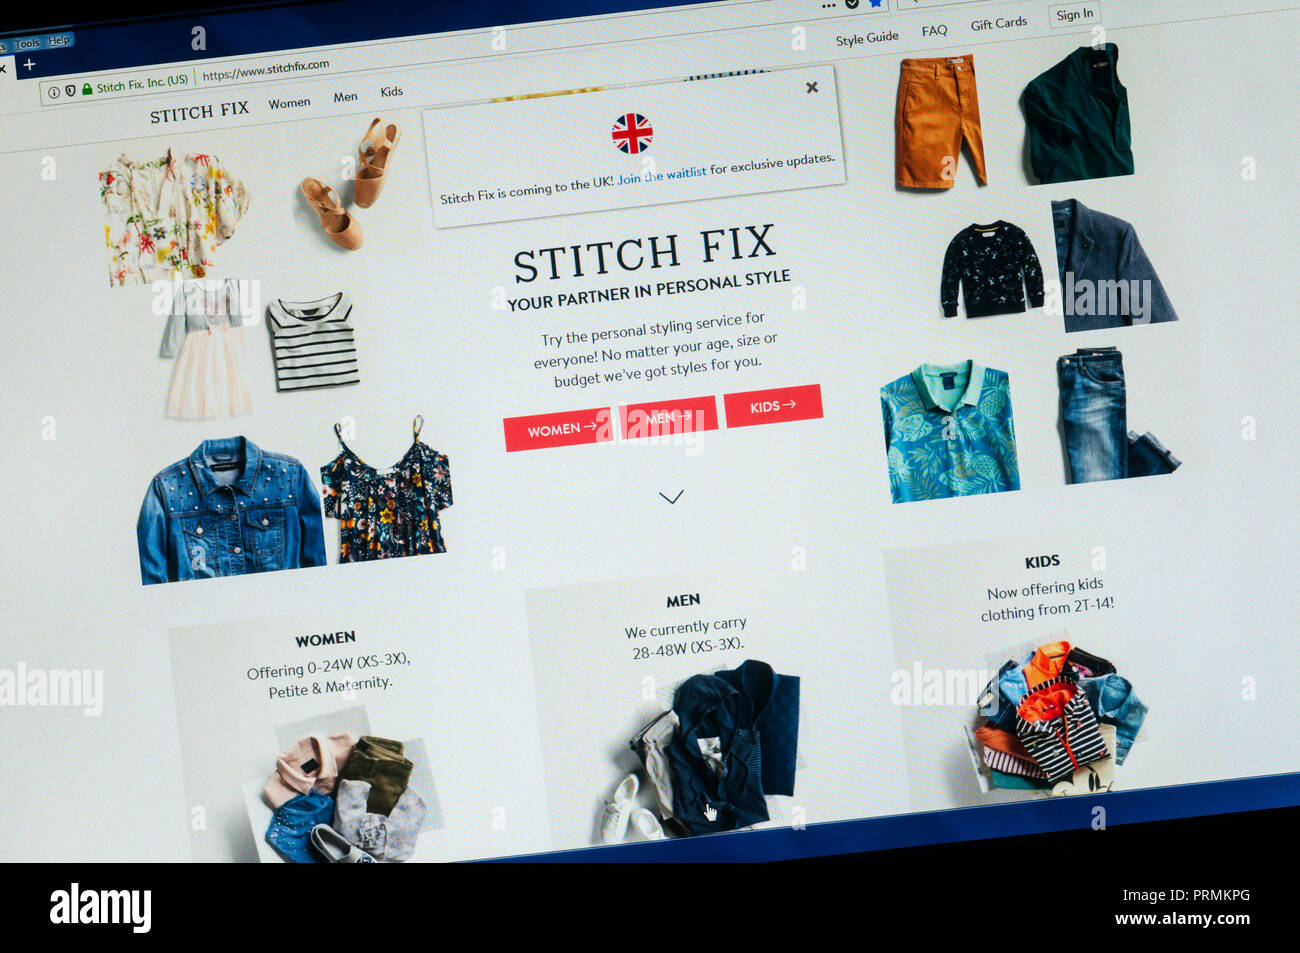 Homepage der American Clothing website Stitch Fix mit Fenster Ankündigung UK kommt. Stockbild